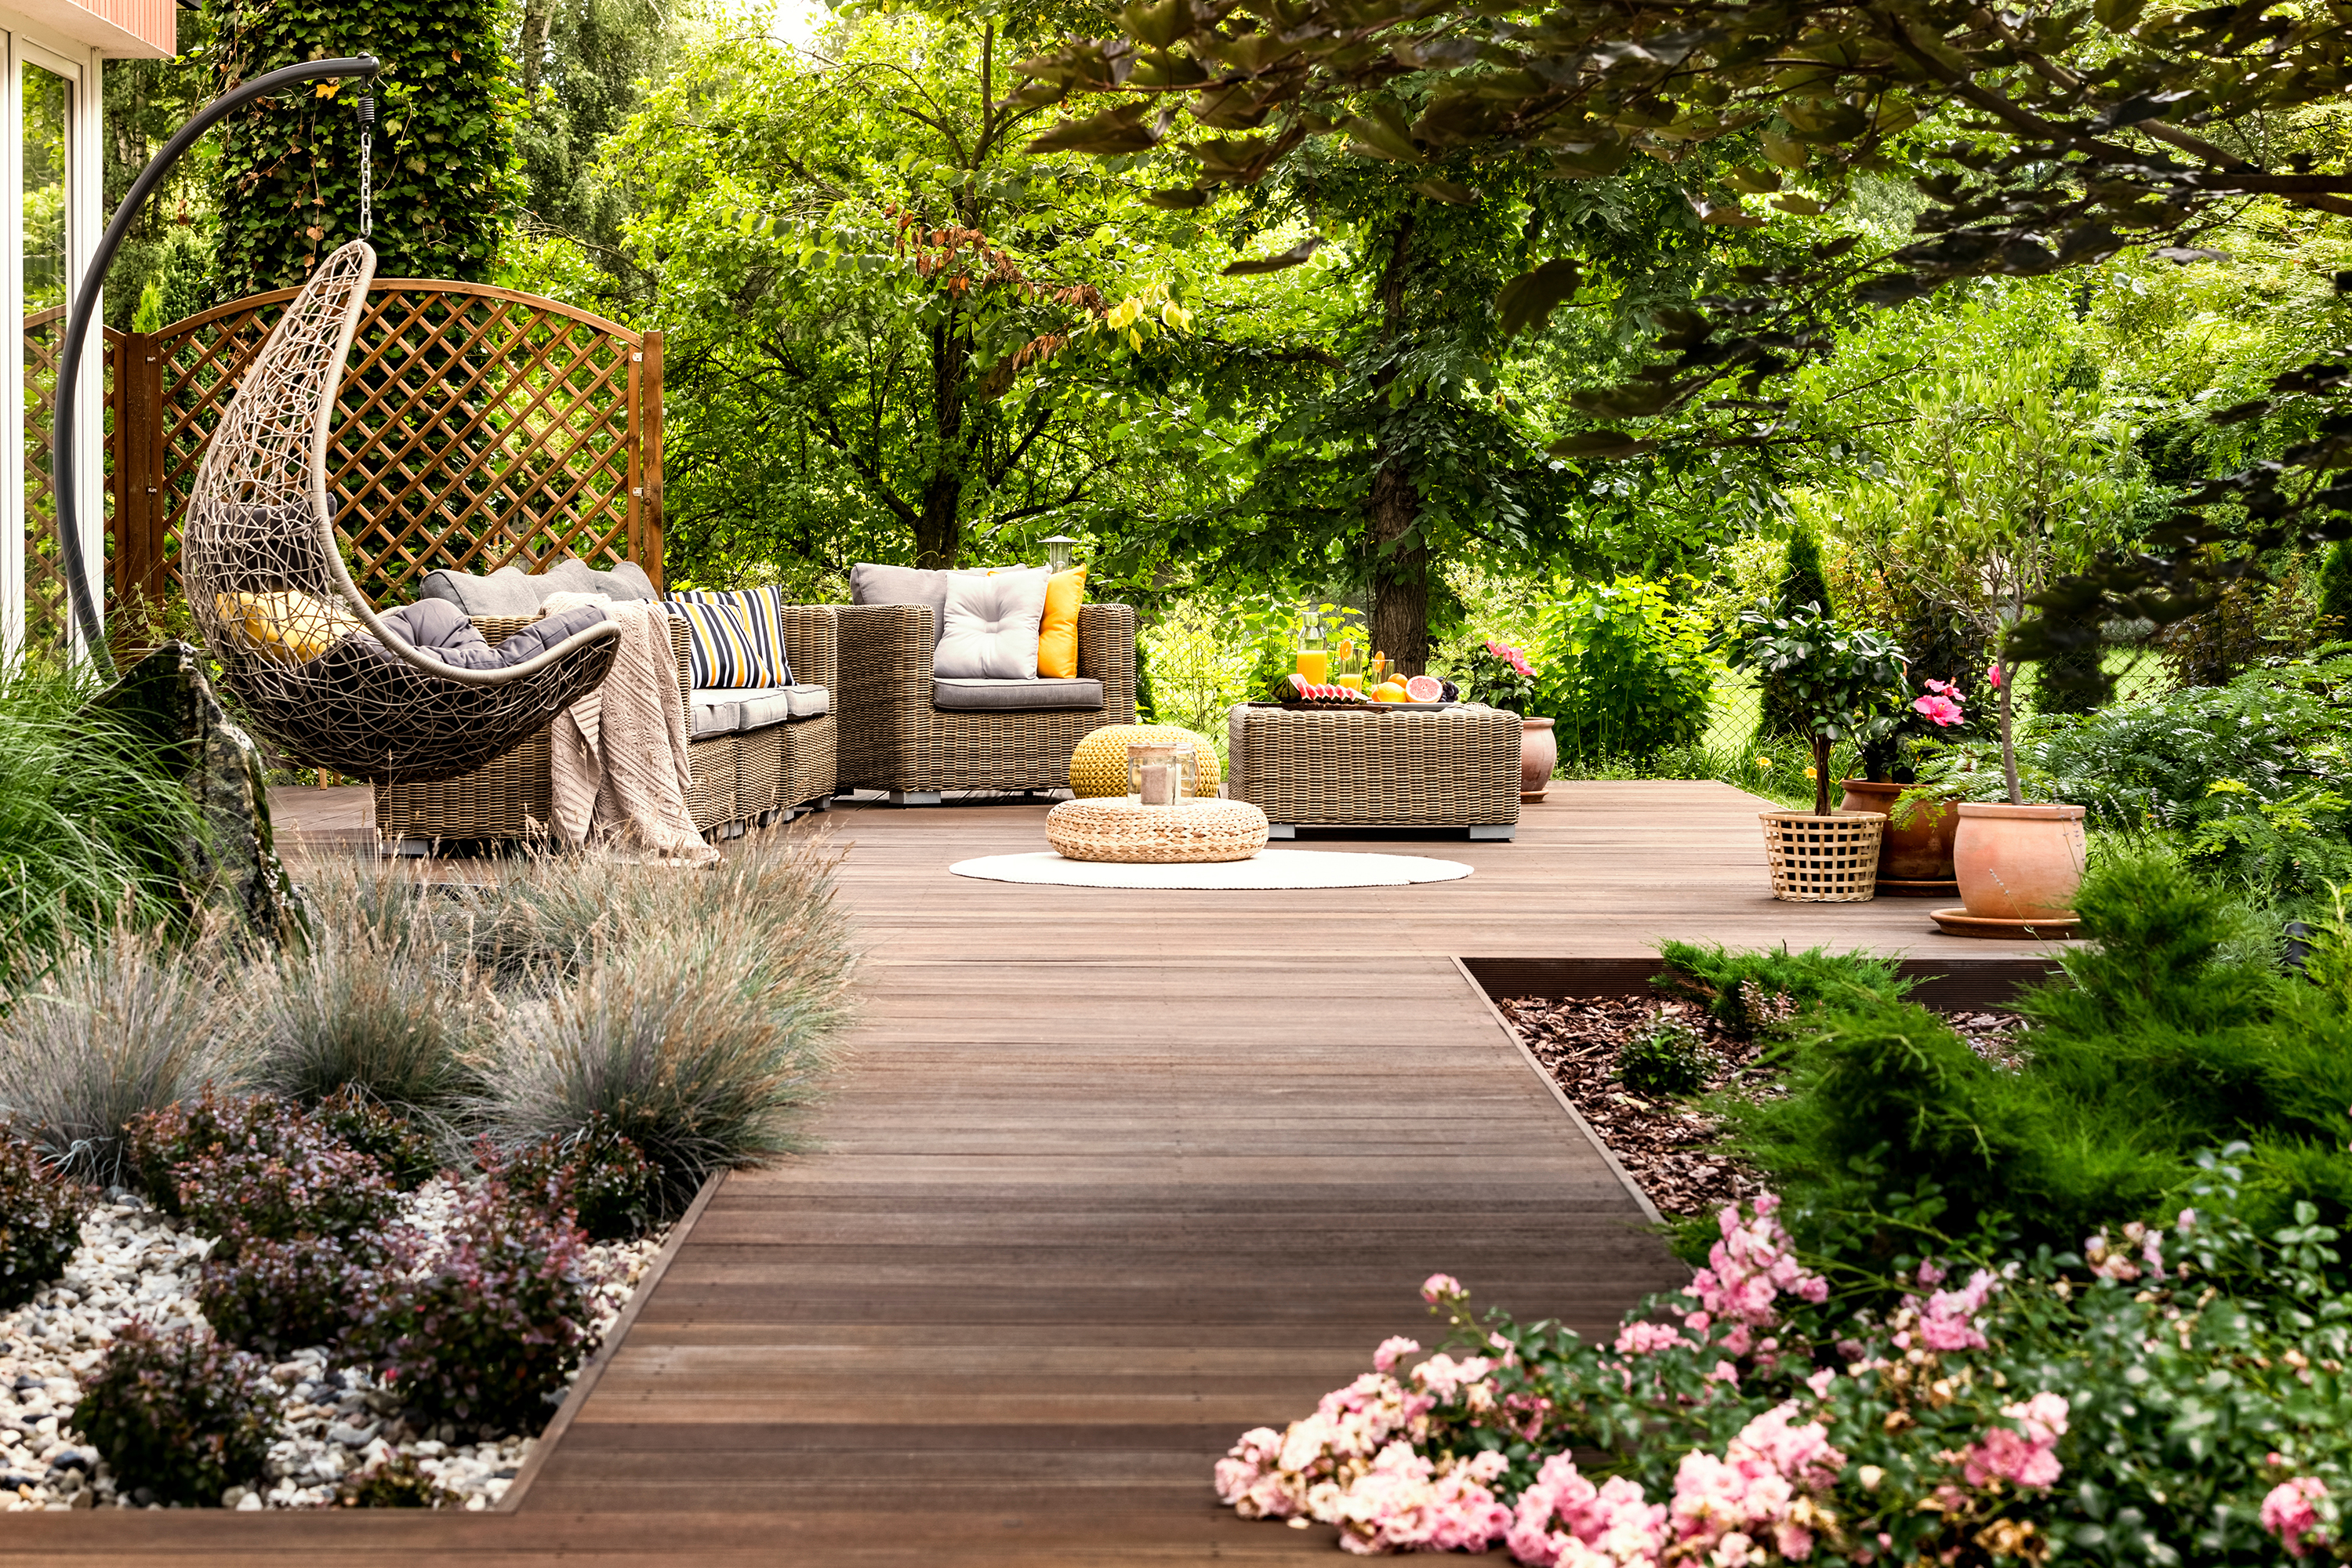 Garden Landscaping Ideas 10 Steps To Landscape A Garden From Scratch Real Homes